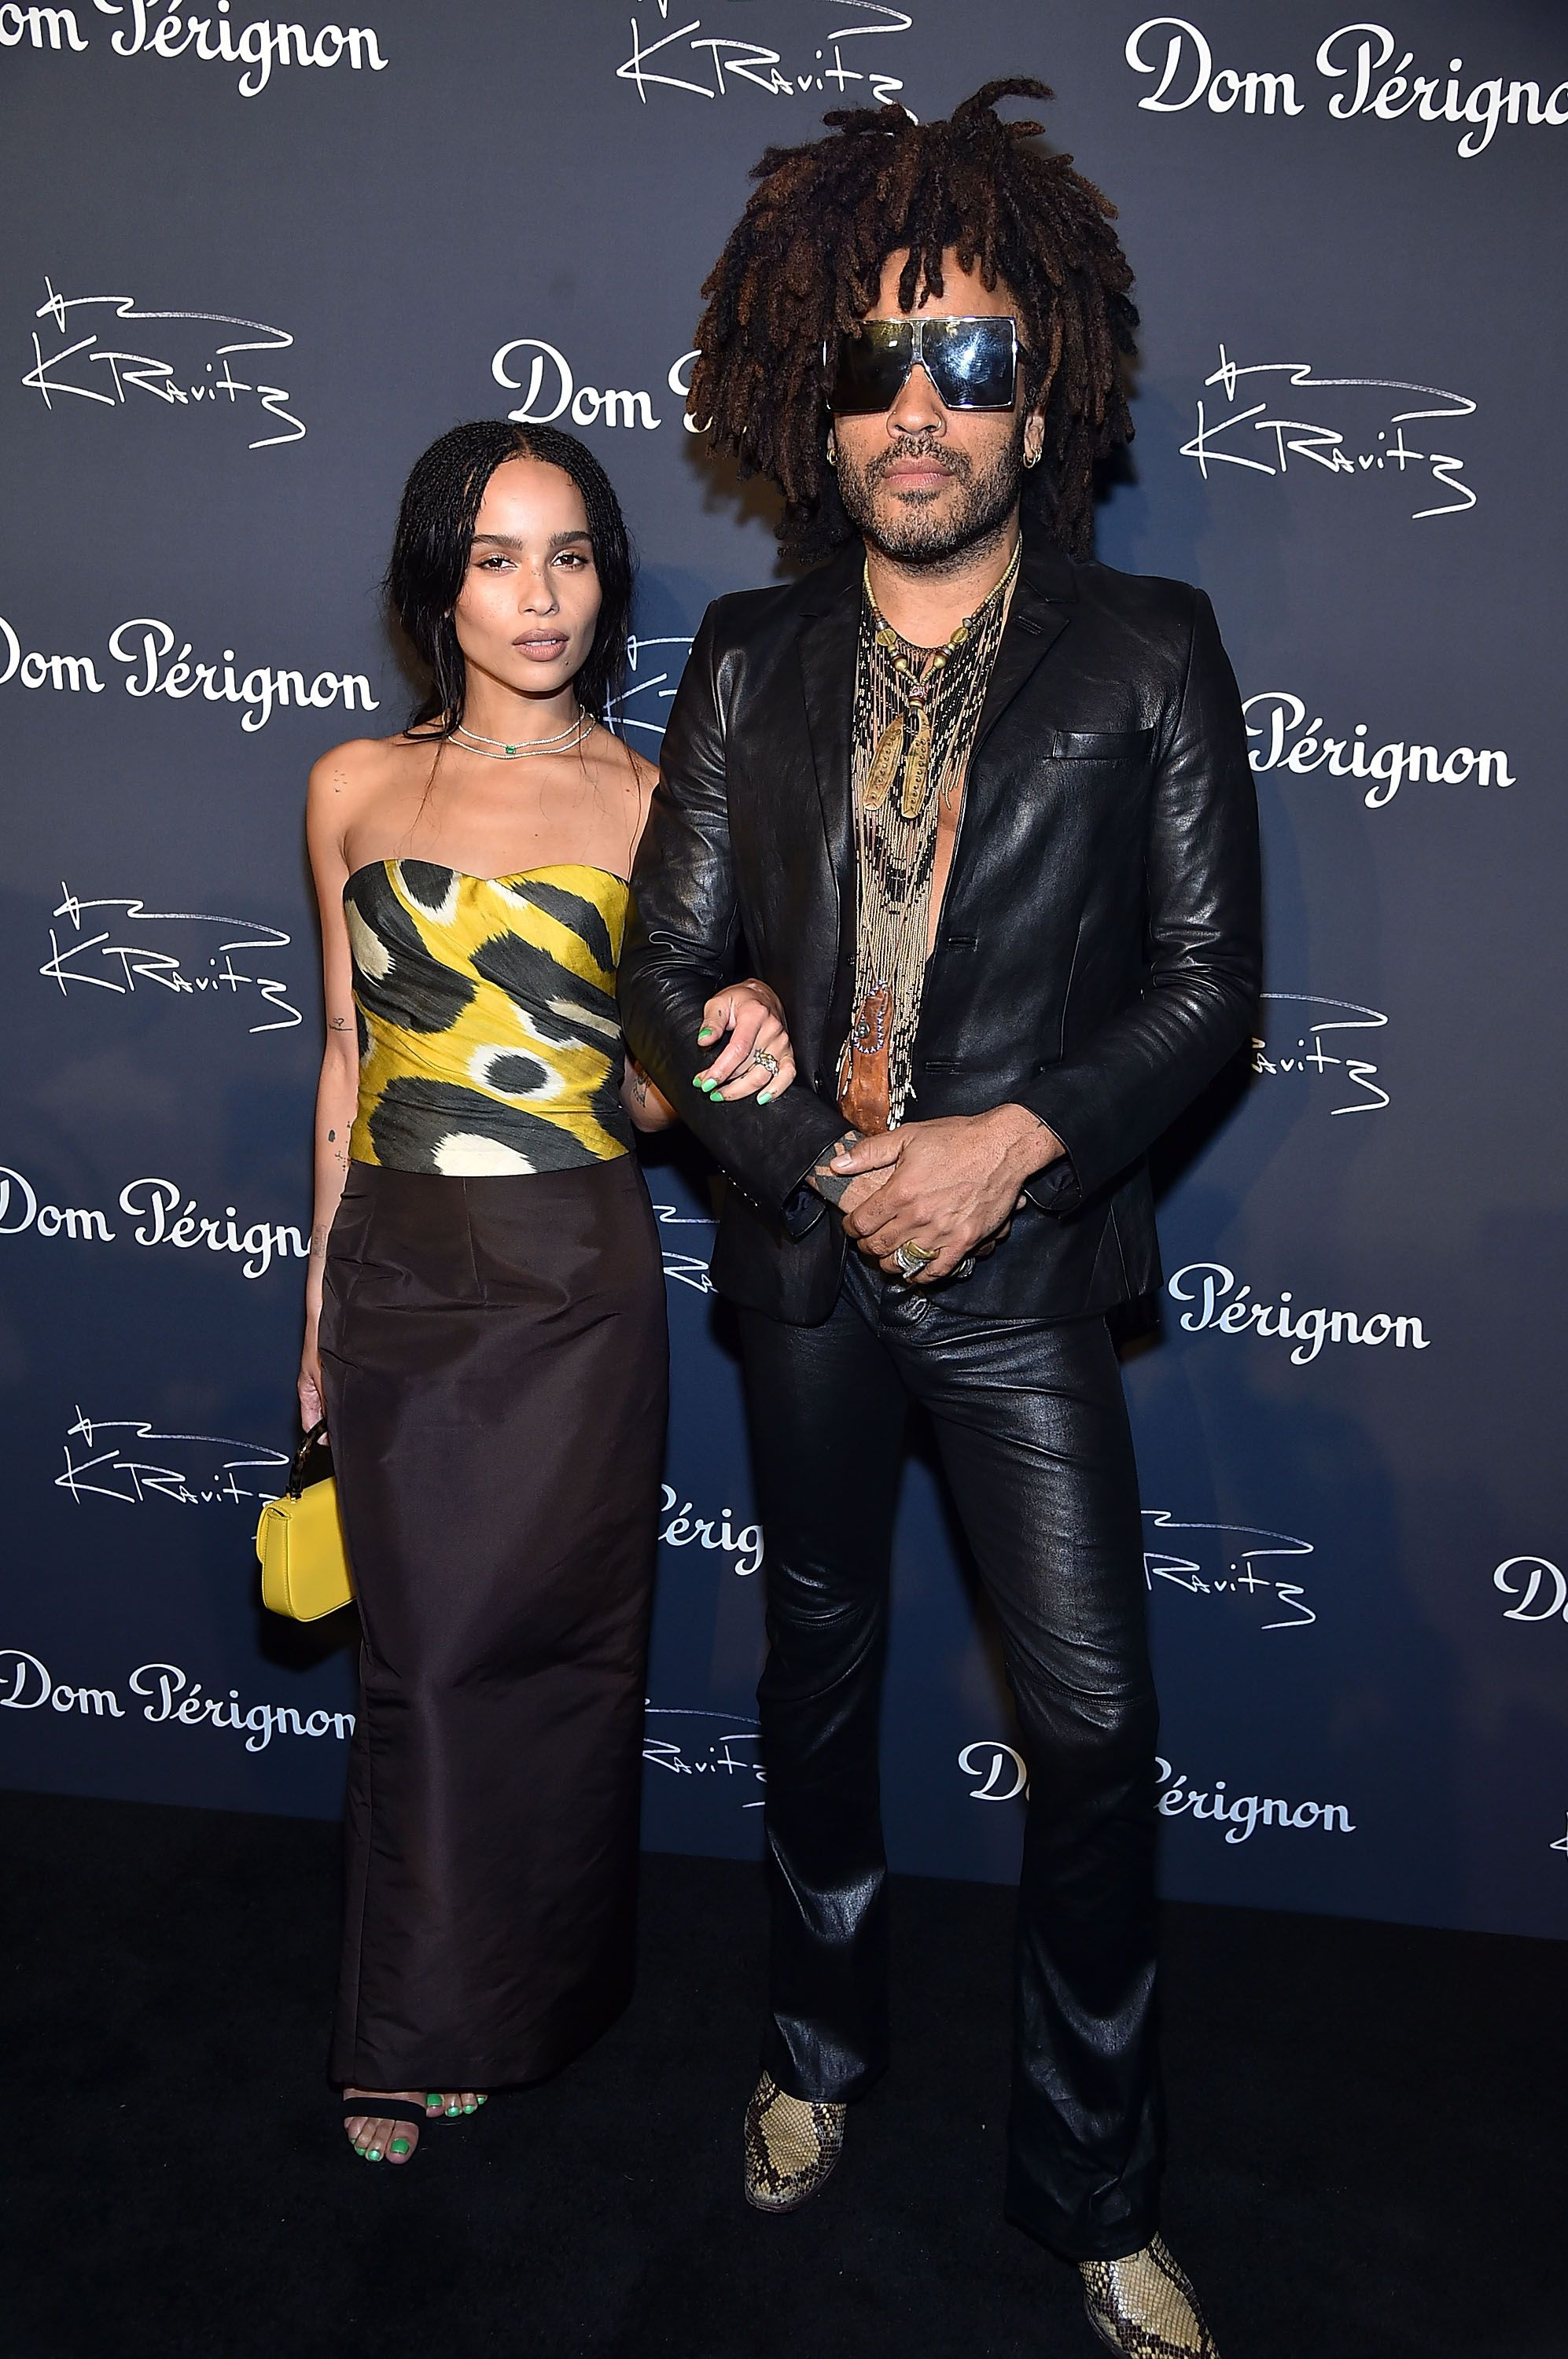 Zoe and Lenny Kravitz at the Dom Perignon & Lenny Kravitz: 'Assemblage' Exhibition on September 28, 2018 in New York. | Photo: Getty Images